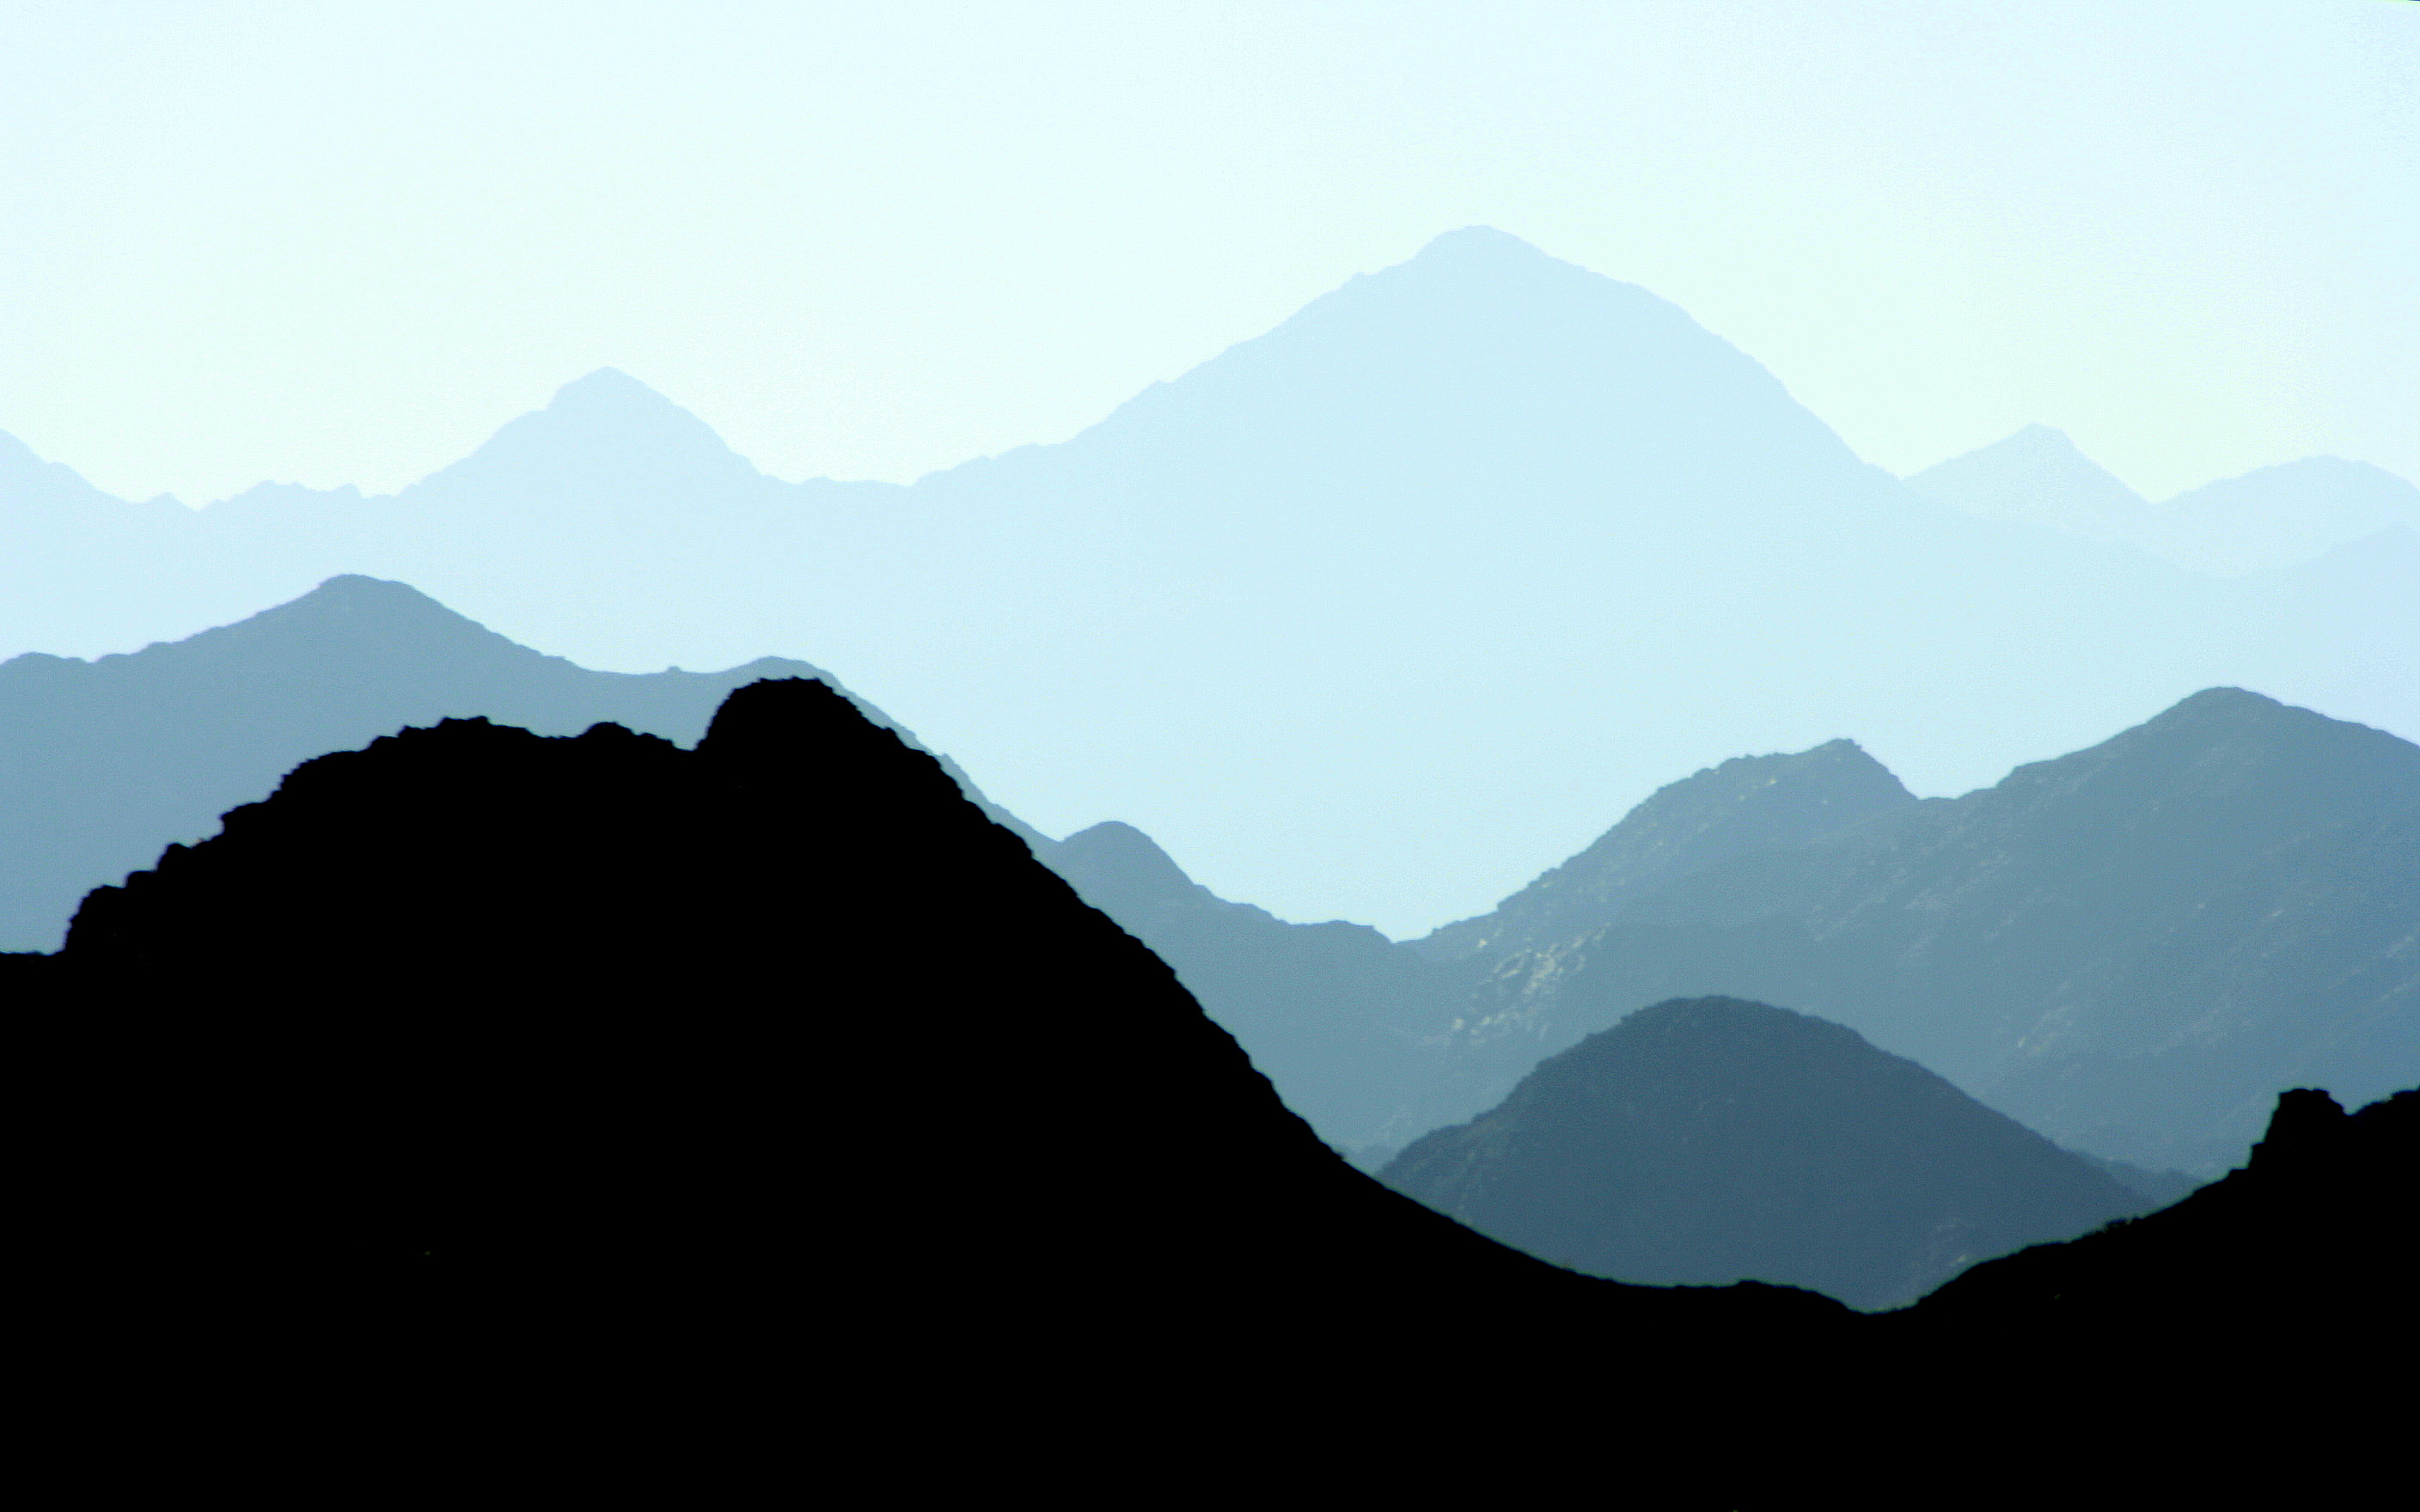 Silhouette of mountains during daytime free stock photo Mountain silhouette